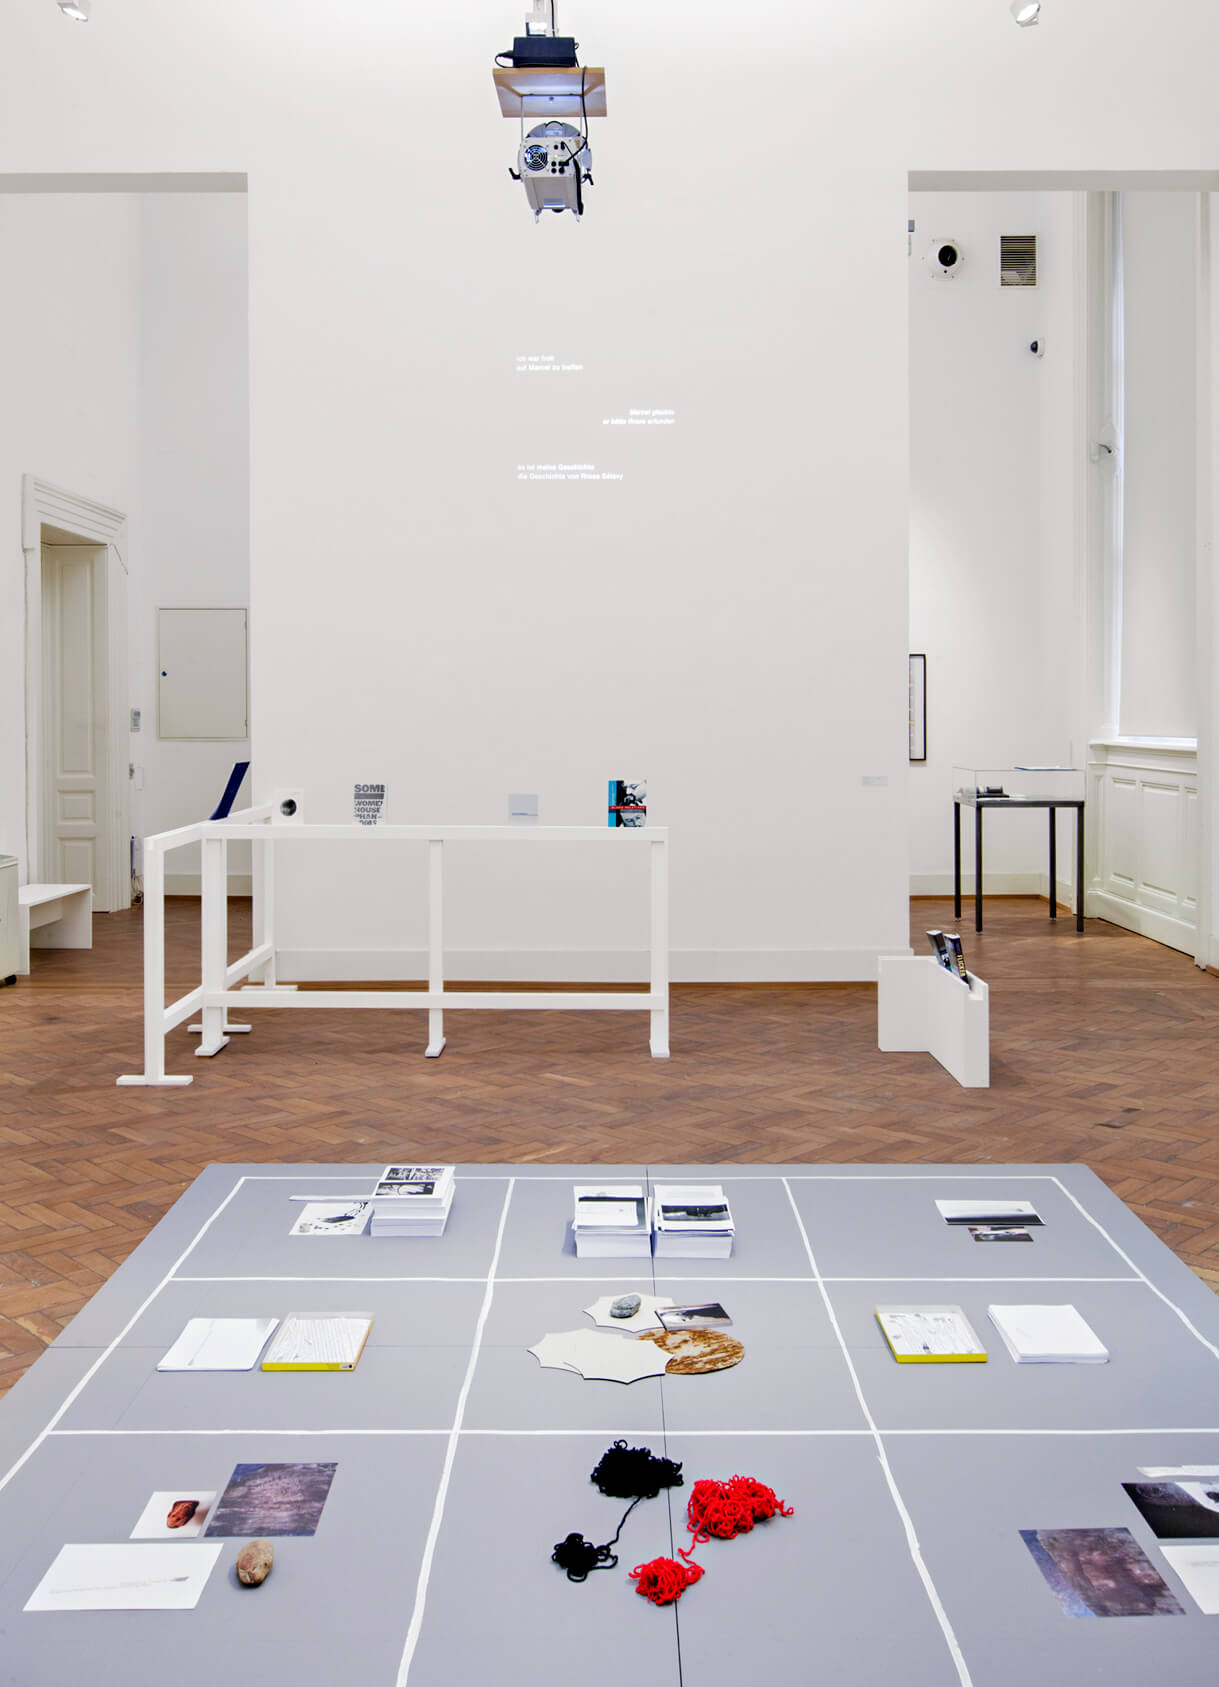 Installation View – Room 04